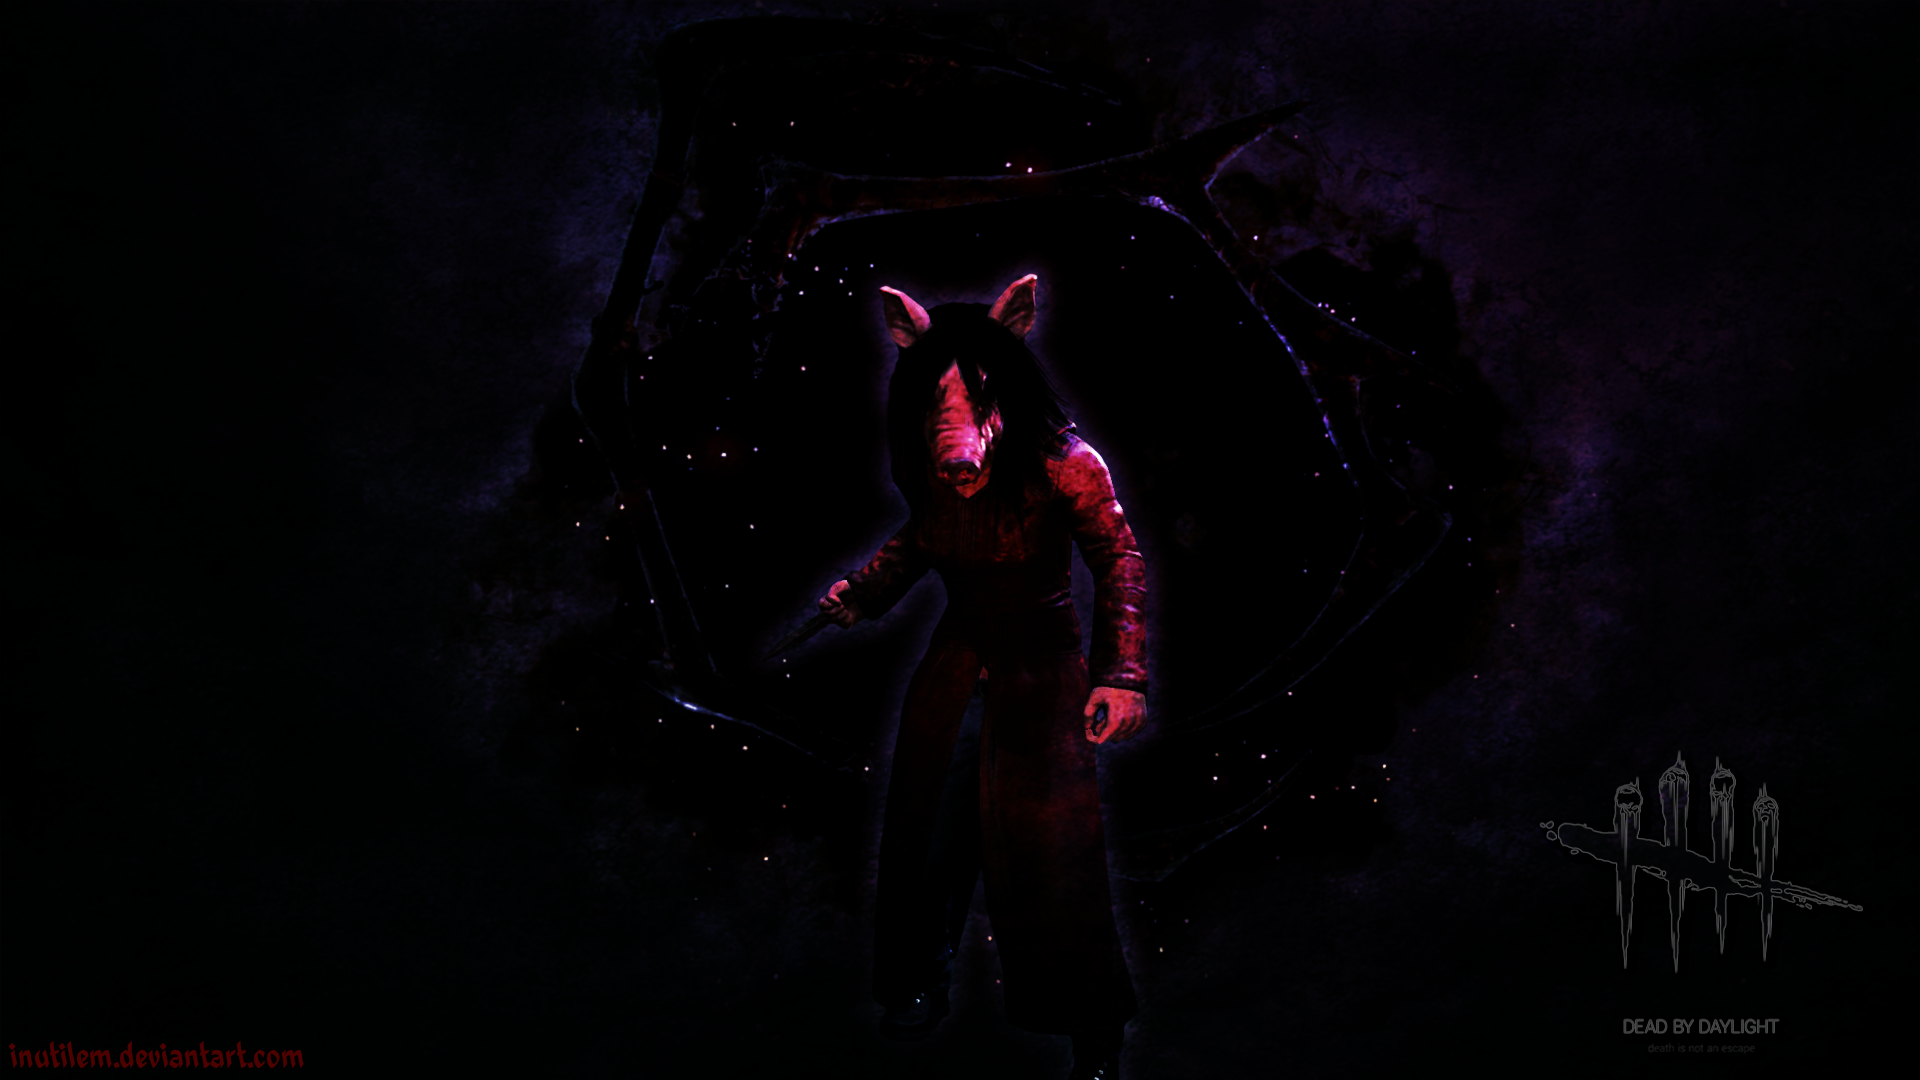 The Pig Wallpaper Dead By Daylight